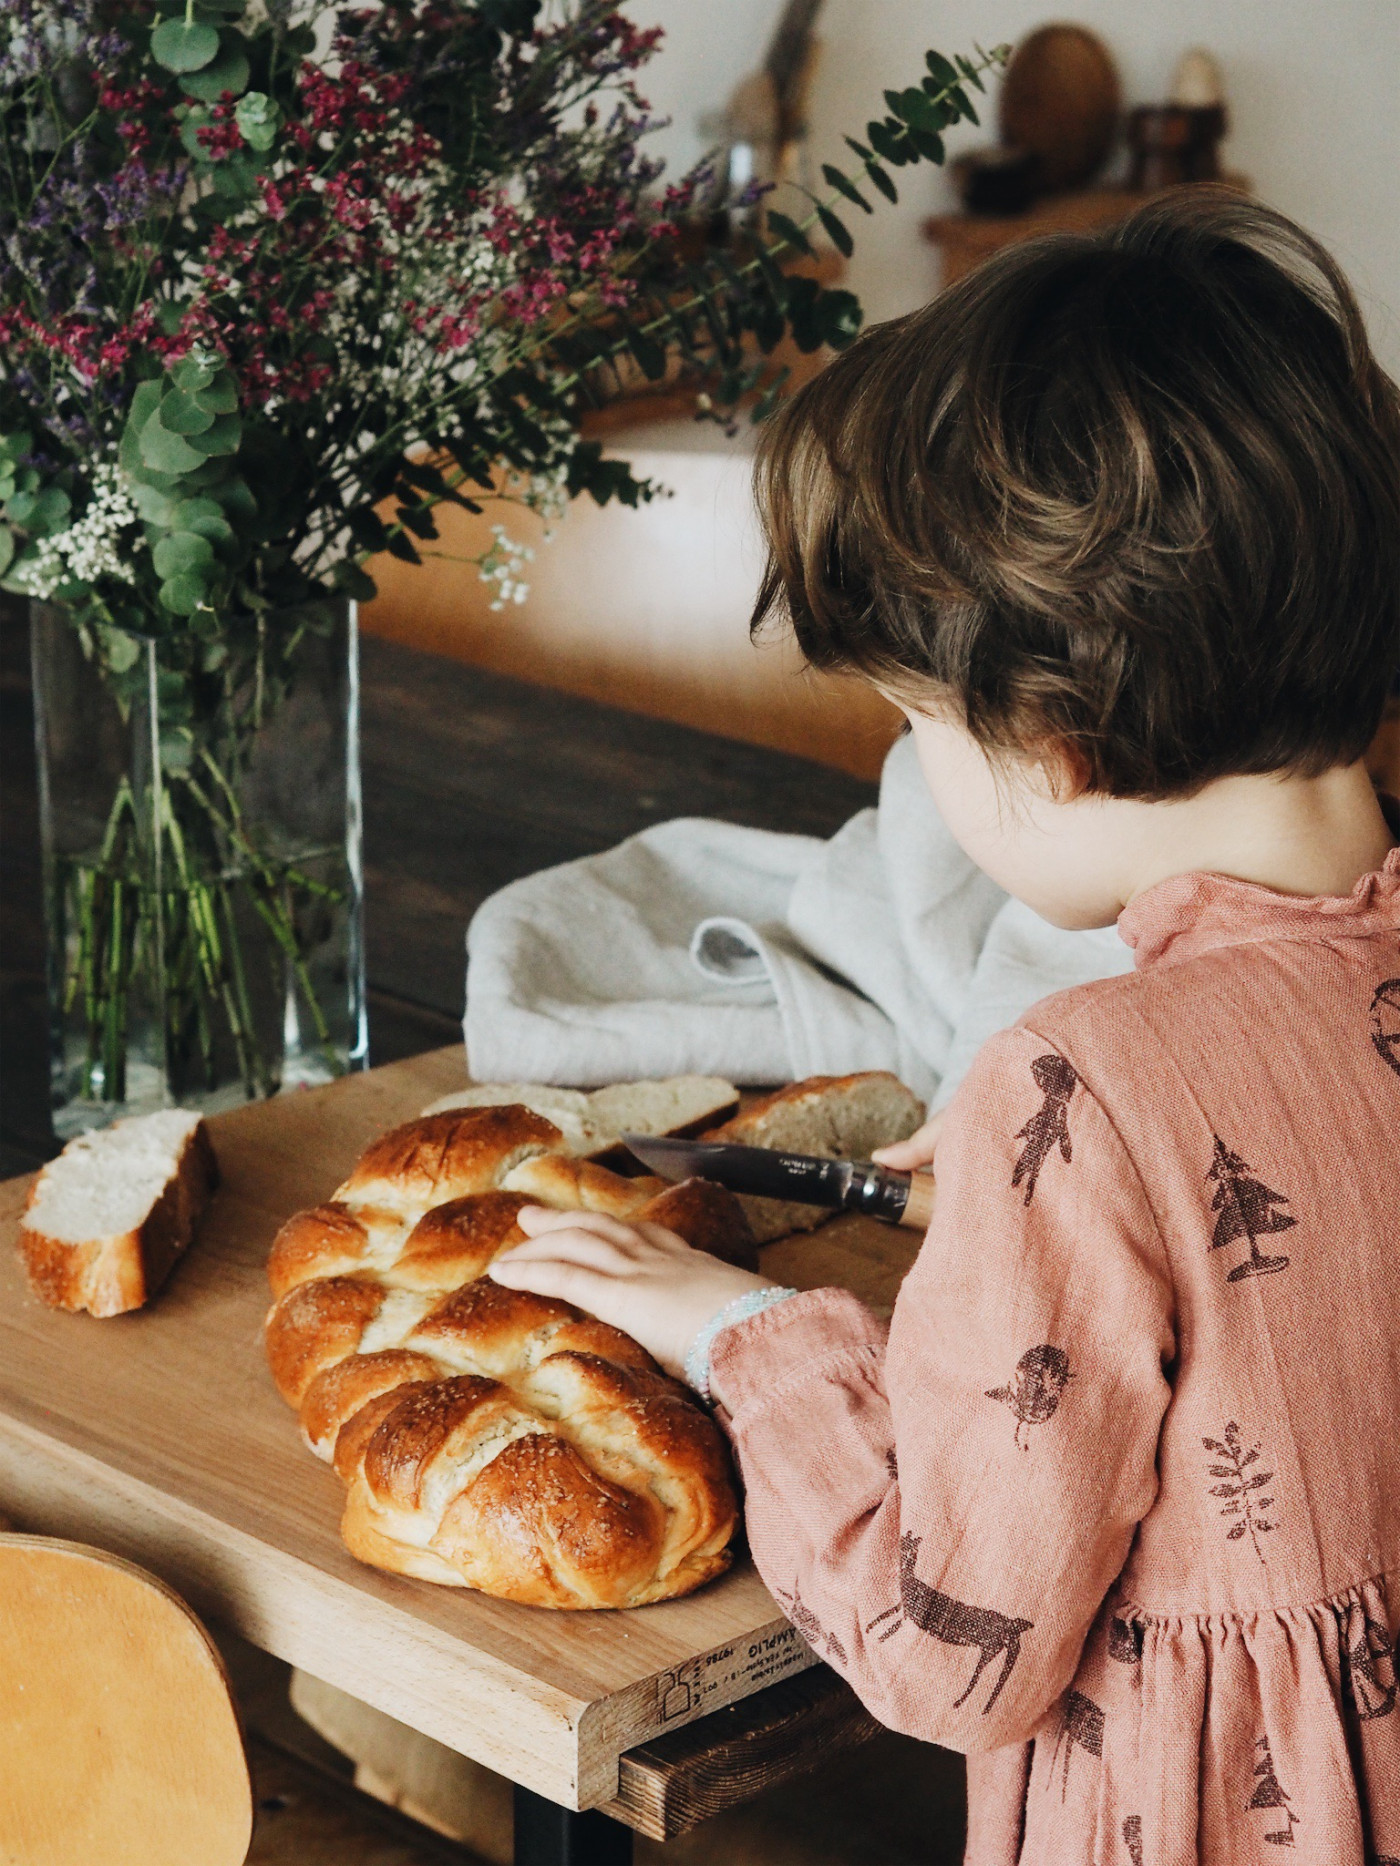 evafedeveka photography Eva Buchtaleck baking kids